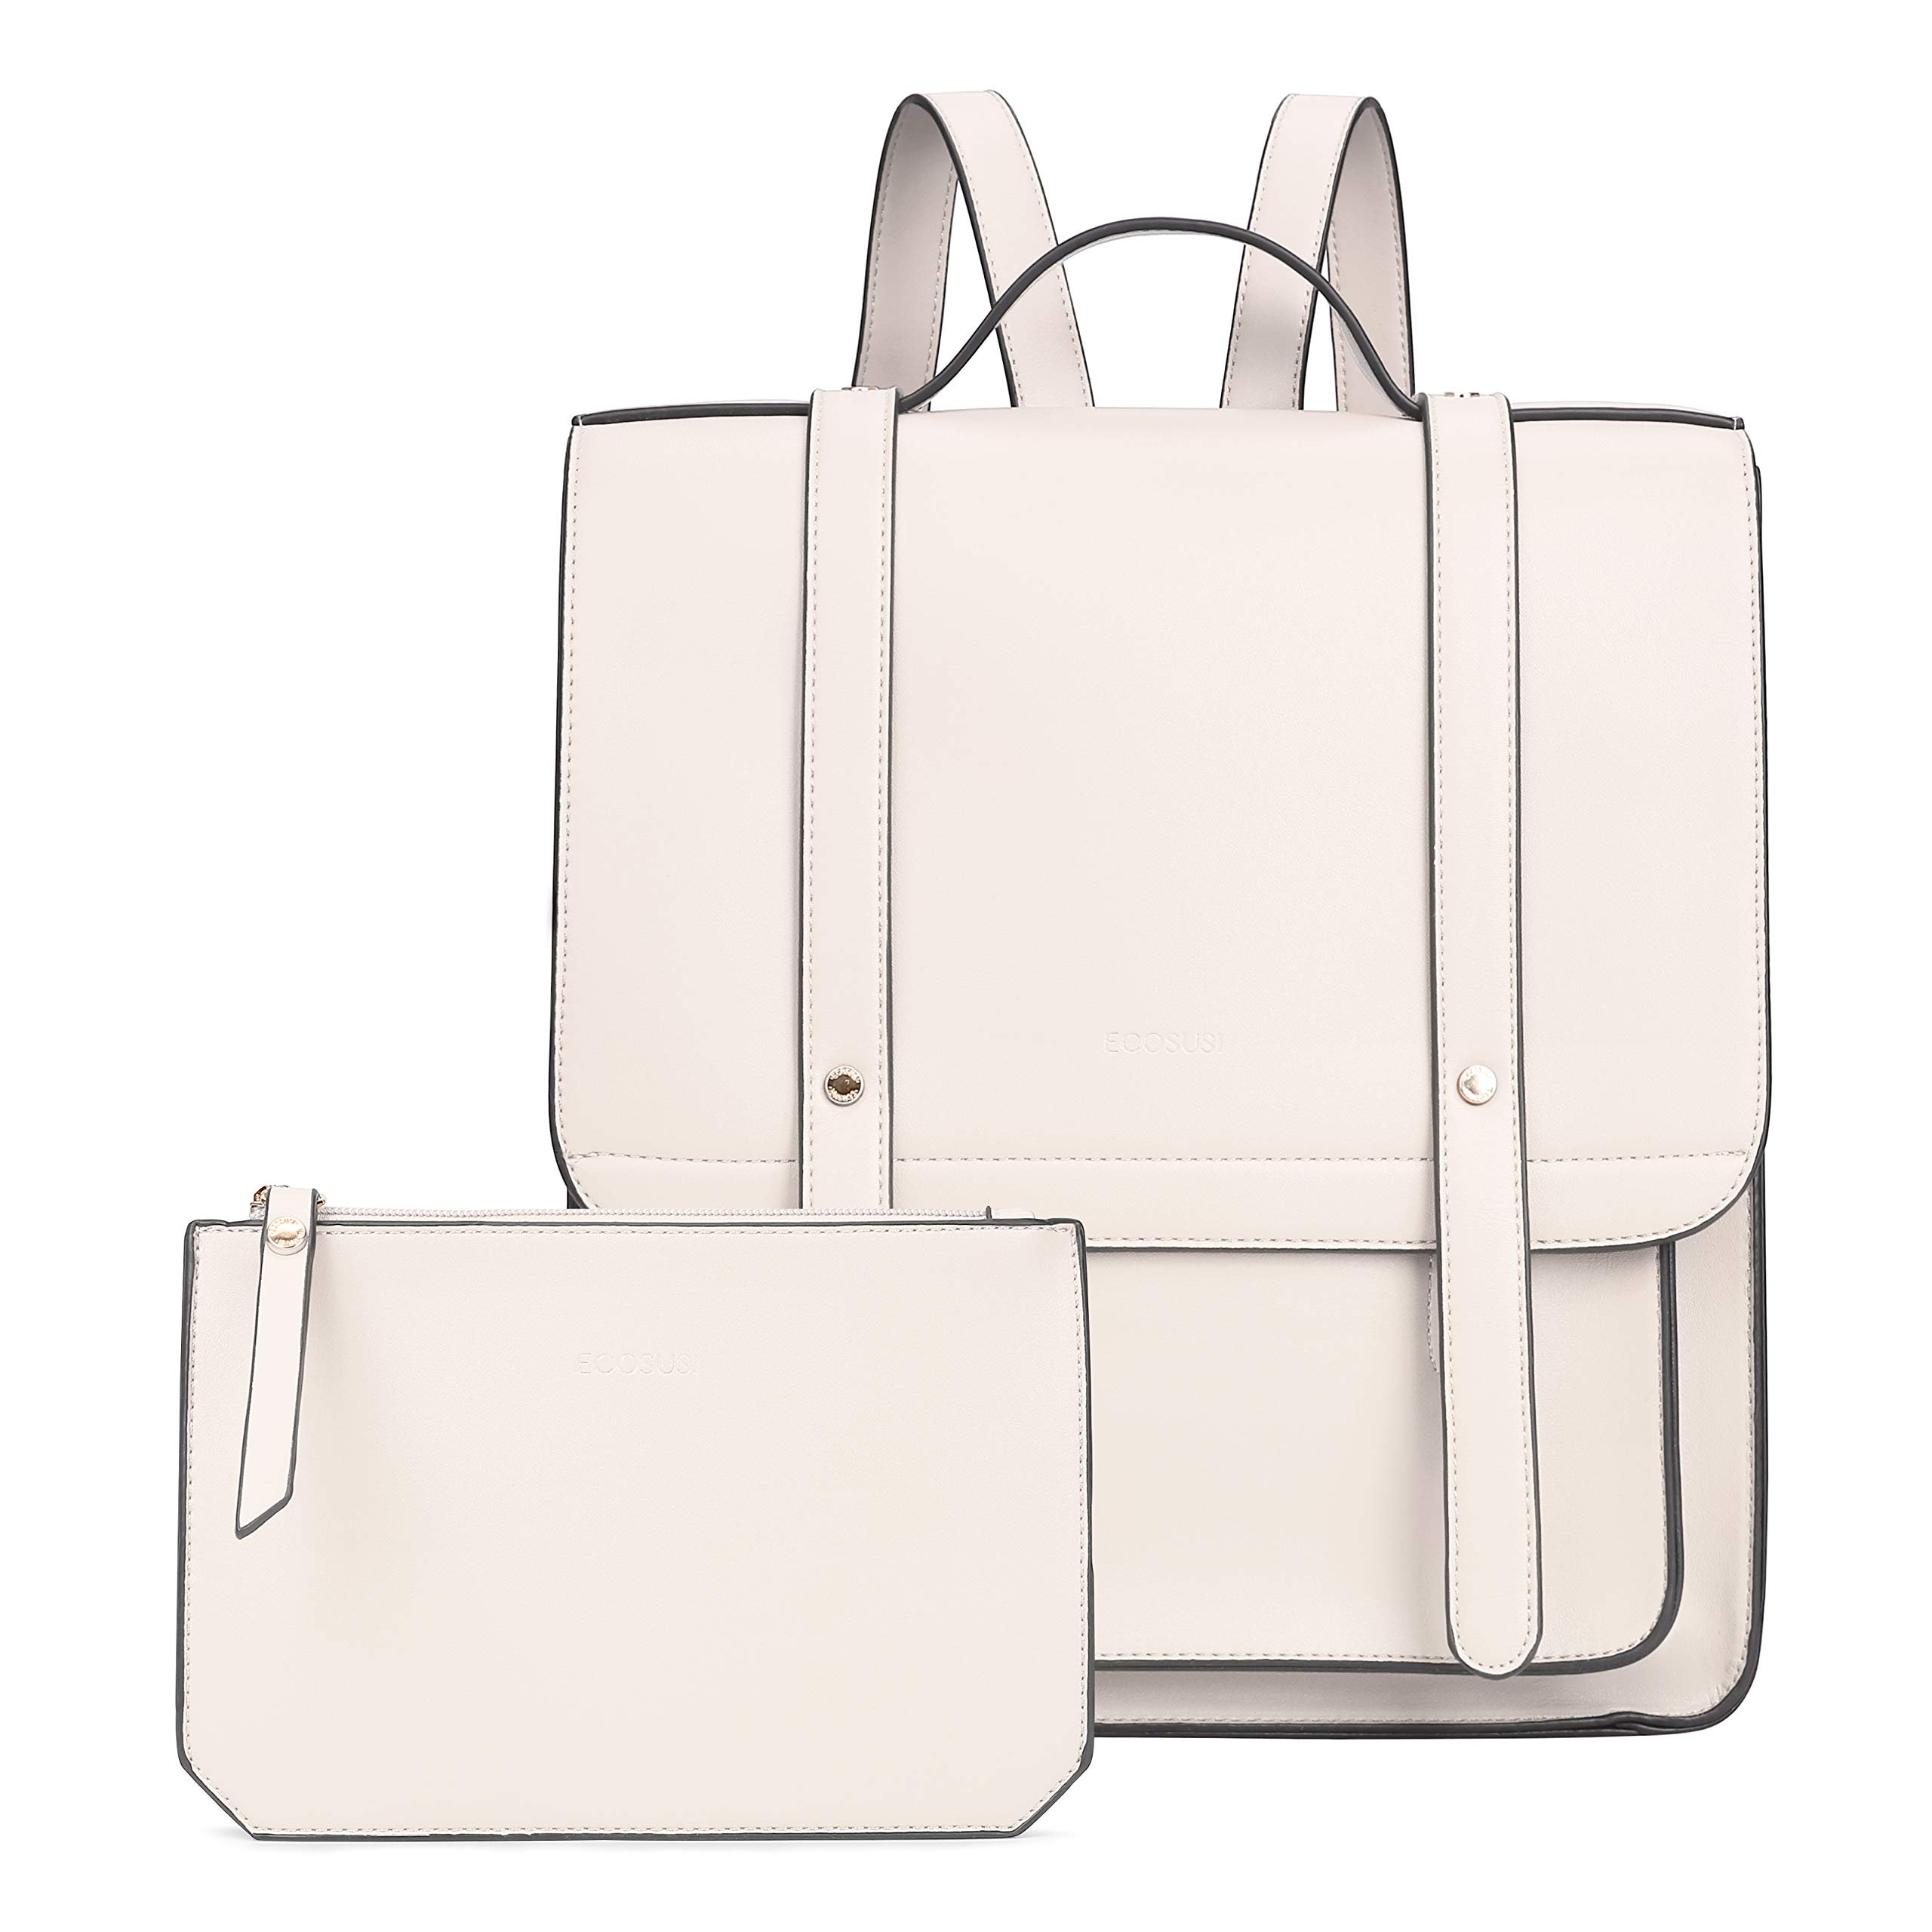 ECOSUSI Women Briefcase Laptop Backpack PU Leather Satchel Messenger Bag Fits up to 14 Inch Laptops with Small Purse, White